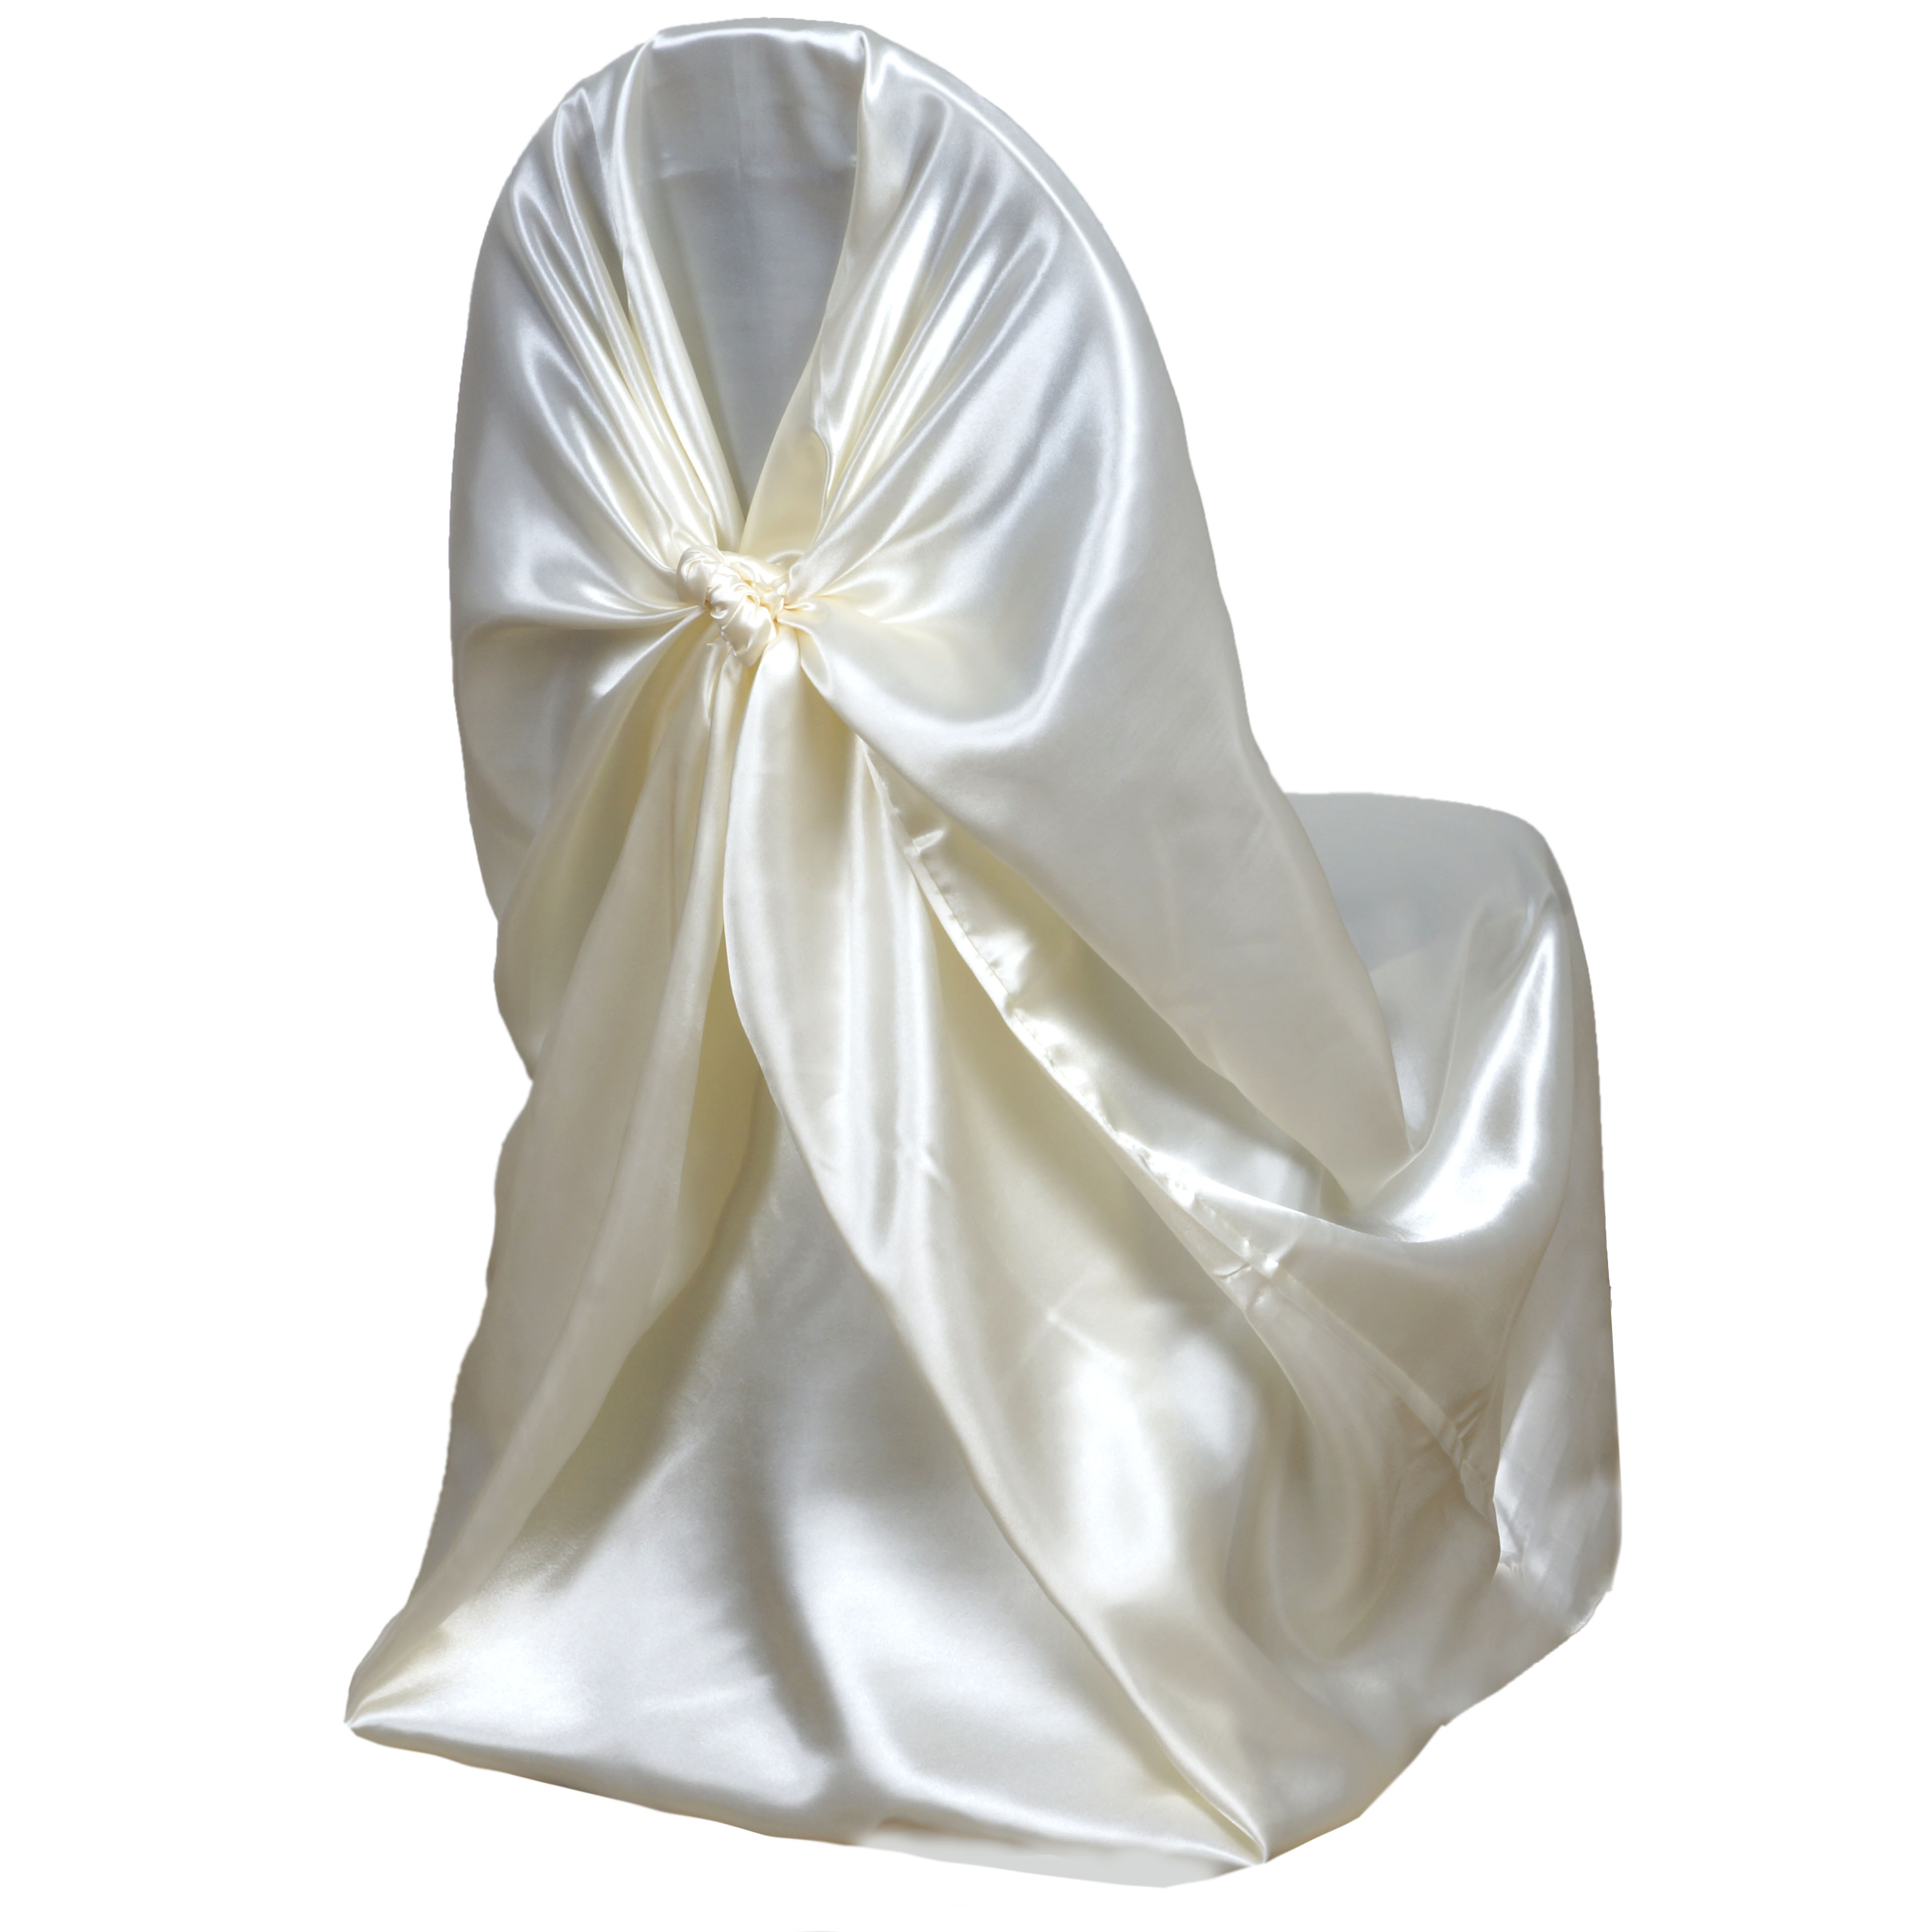 folding weddings rentals re sale wholesale fancy covers chair vanity chairs rental cover bows for ivory bow cheap seat